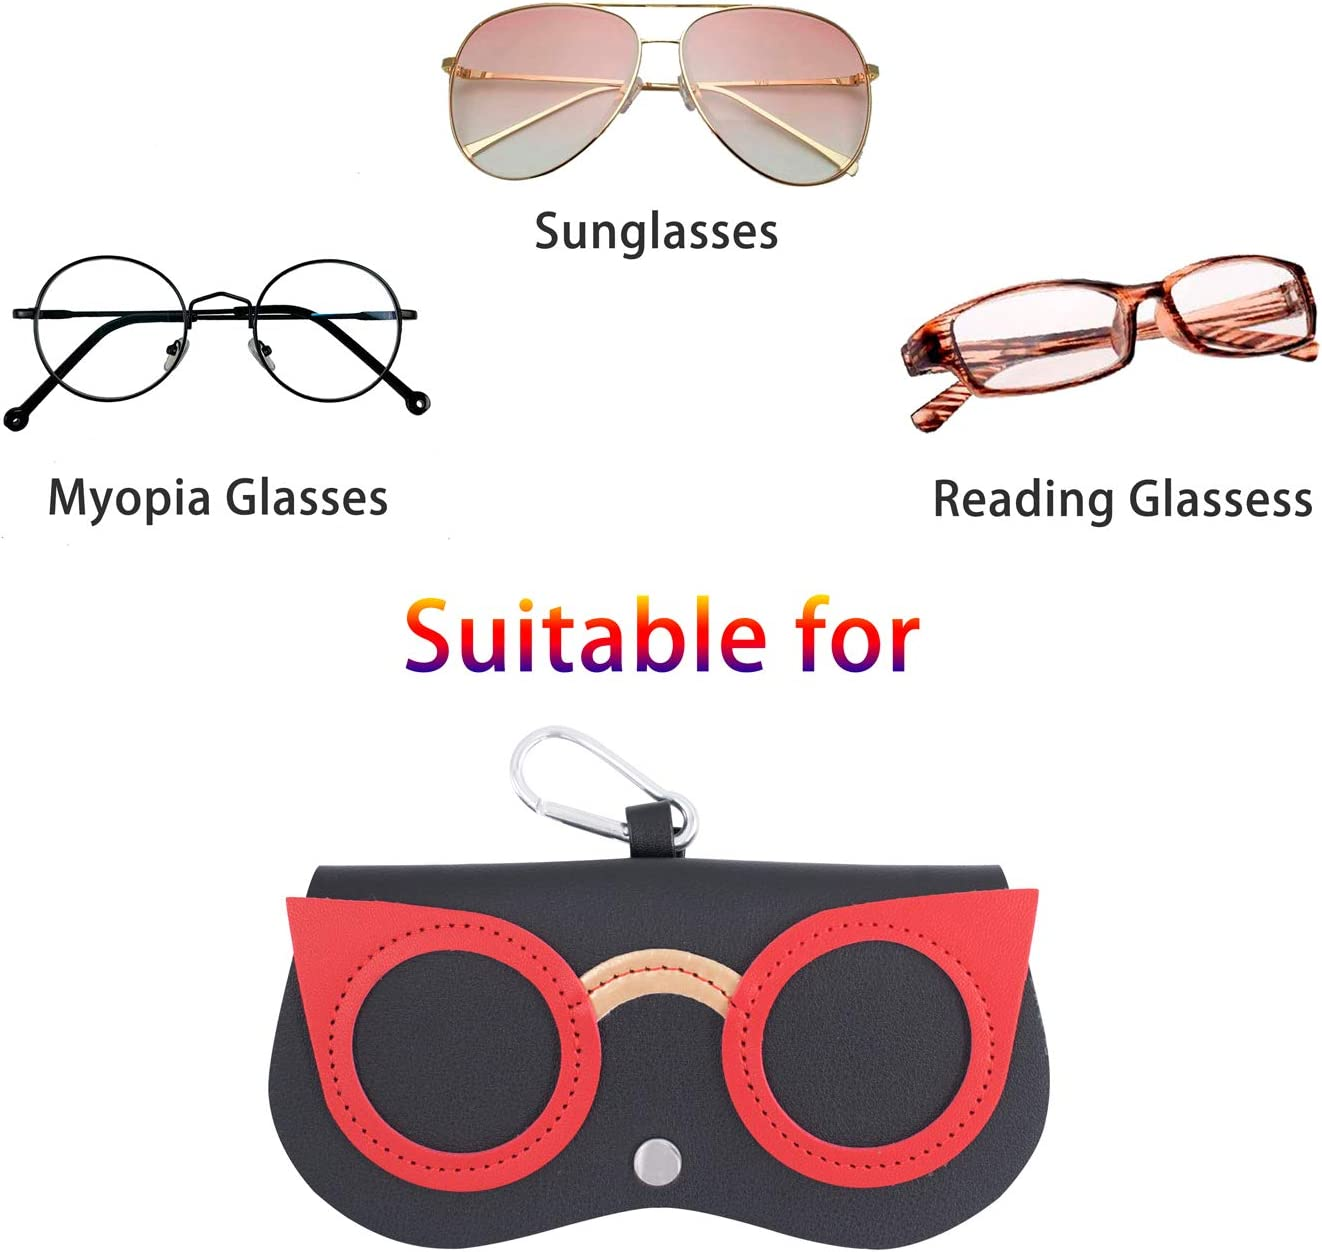 SnowTing 2 PCS Cute Sunglasses Cases, Portable PU Leather Eyeglass Case Box Pouch Protection from Getting Scratches Lightweight Soft Eyewear Bag for Women Men Girls Outdoor Exercise Decor